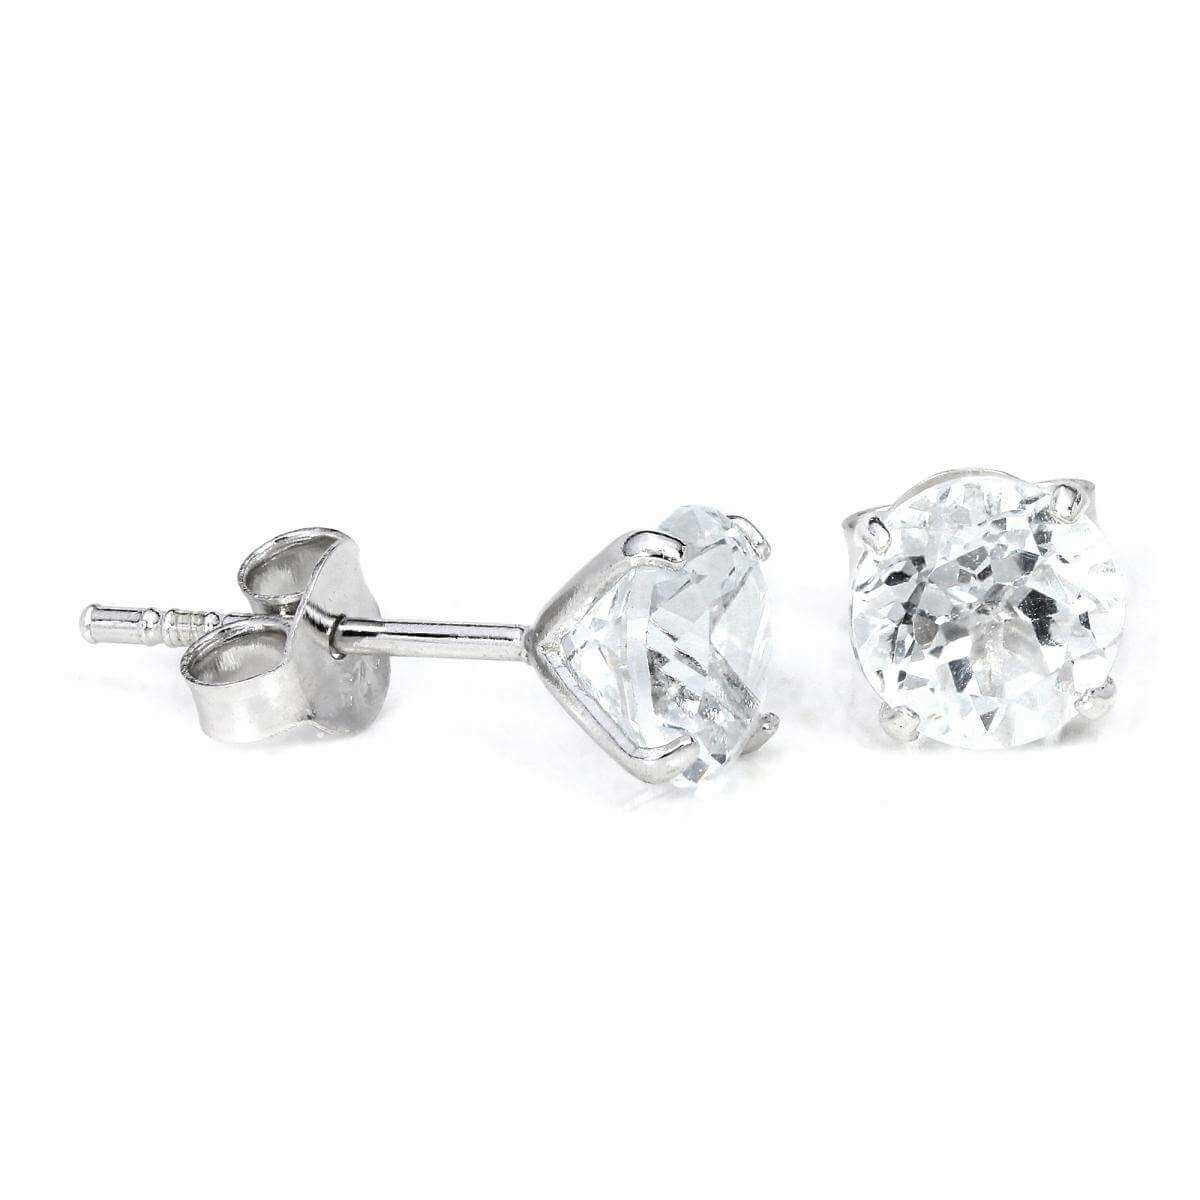 Sterling Silver & 6mm Round 4 Prong Set White Topaz Gemstone Stud Earrings